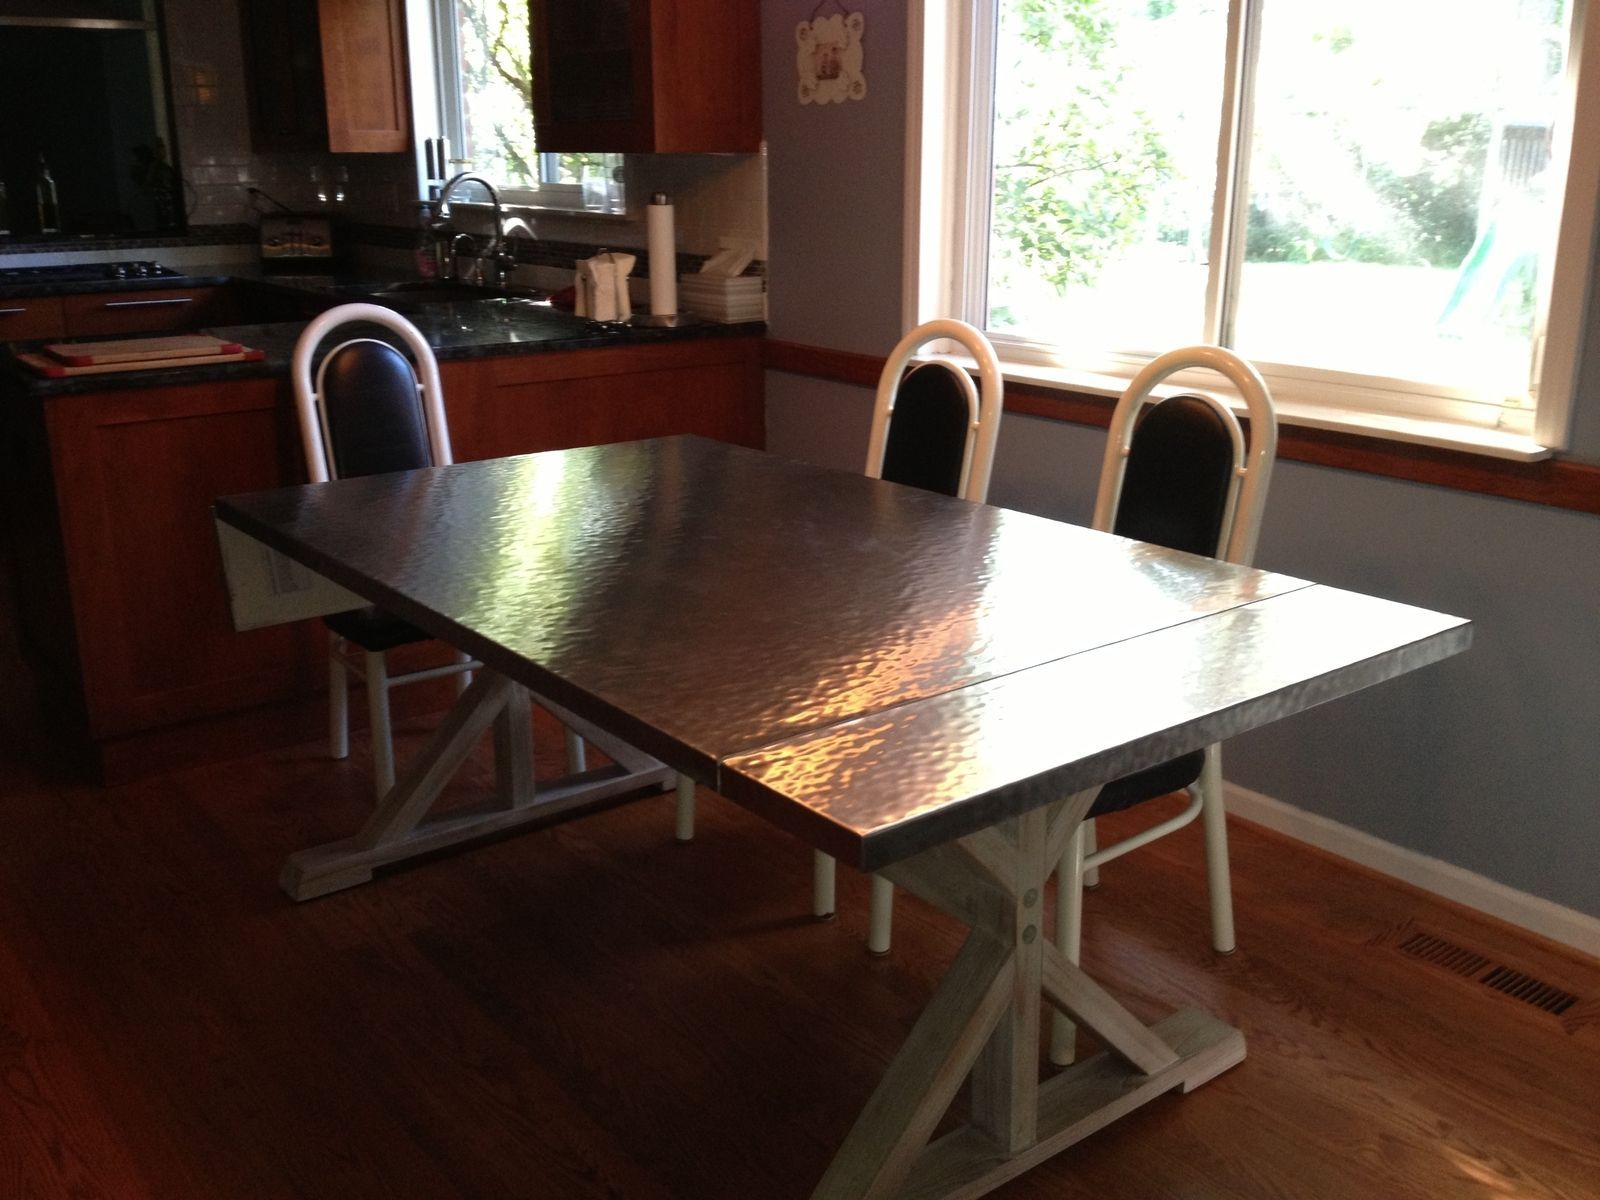 Stainless Steel Dining Room Tables Brilliant Kitchen Nook Table With Chandelier  House Interior Design Inspiration